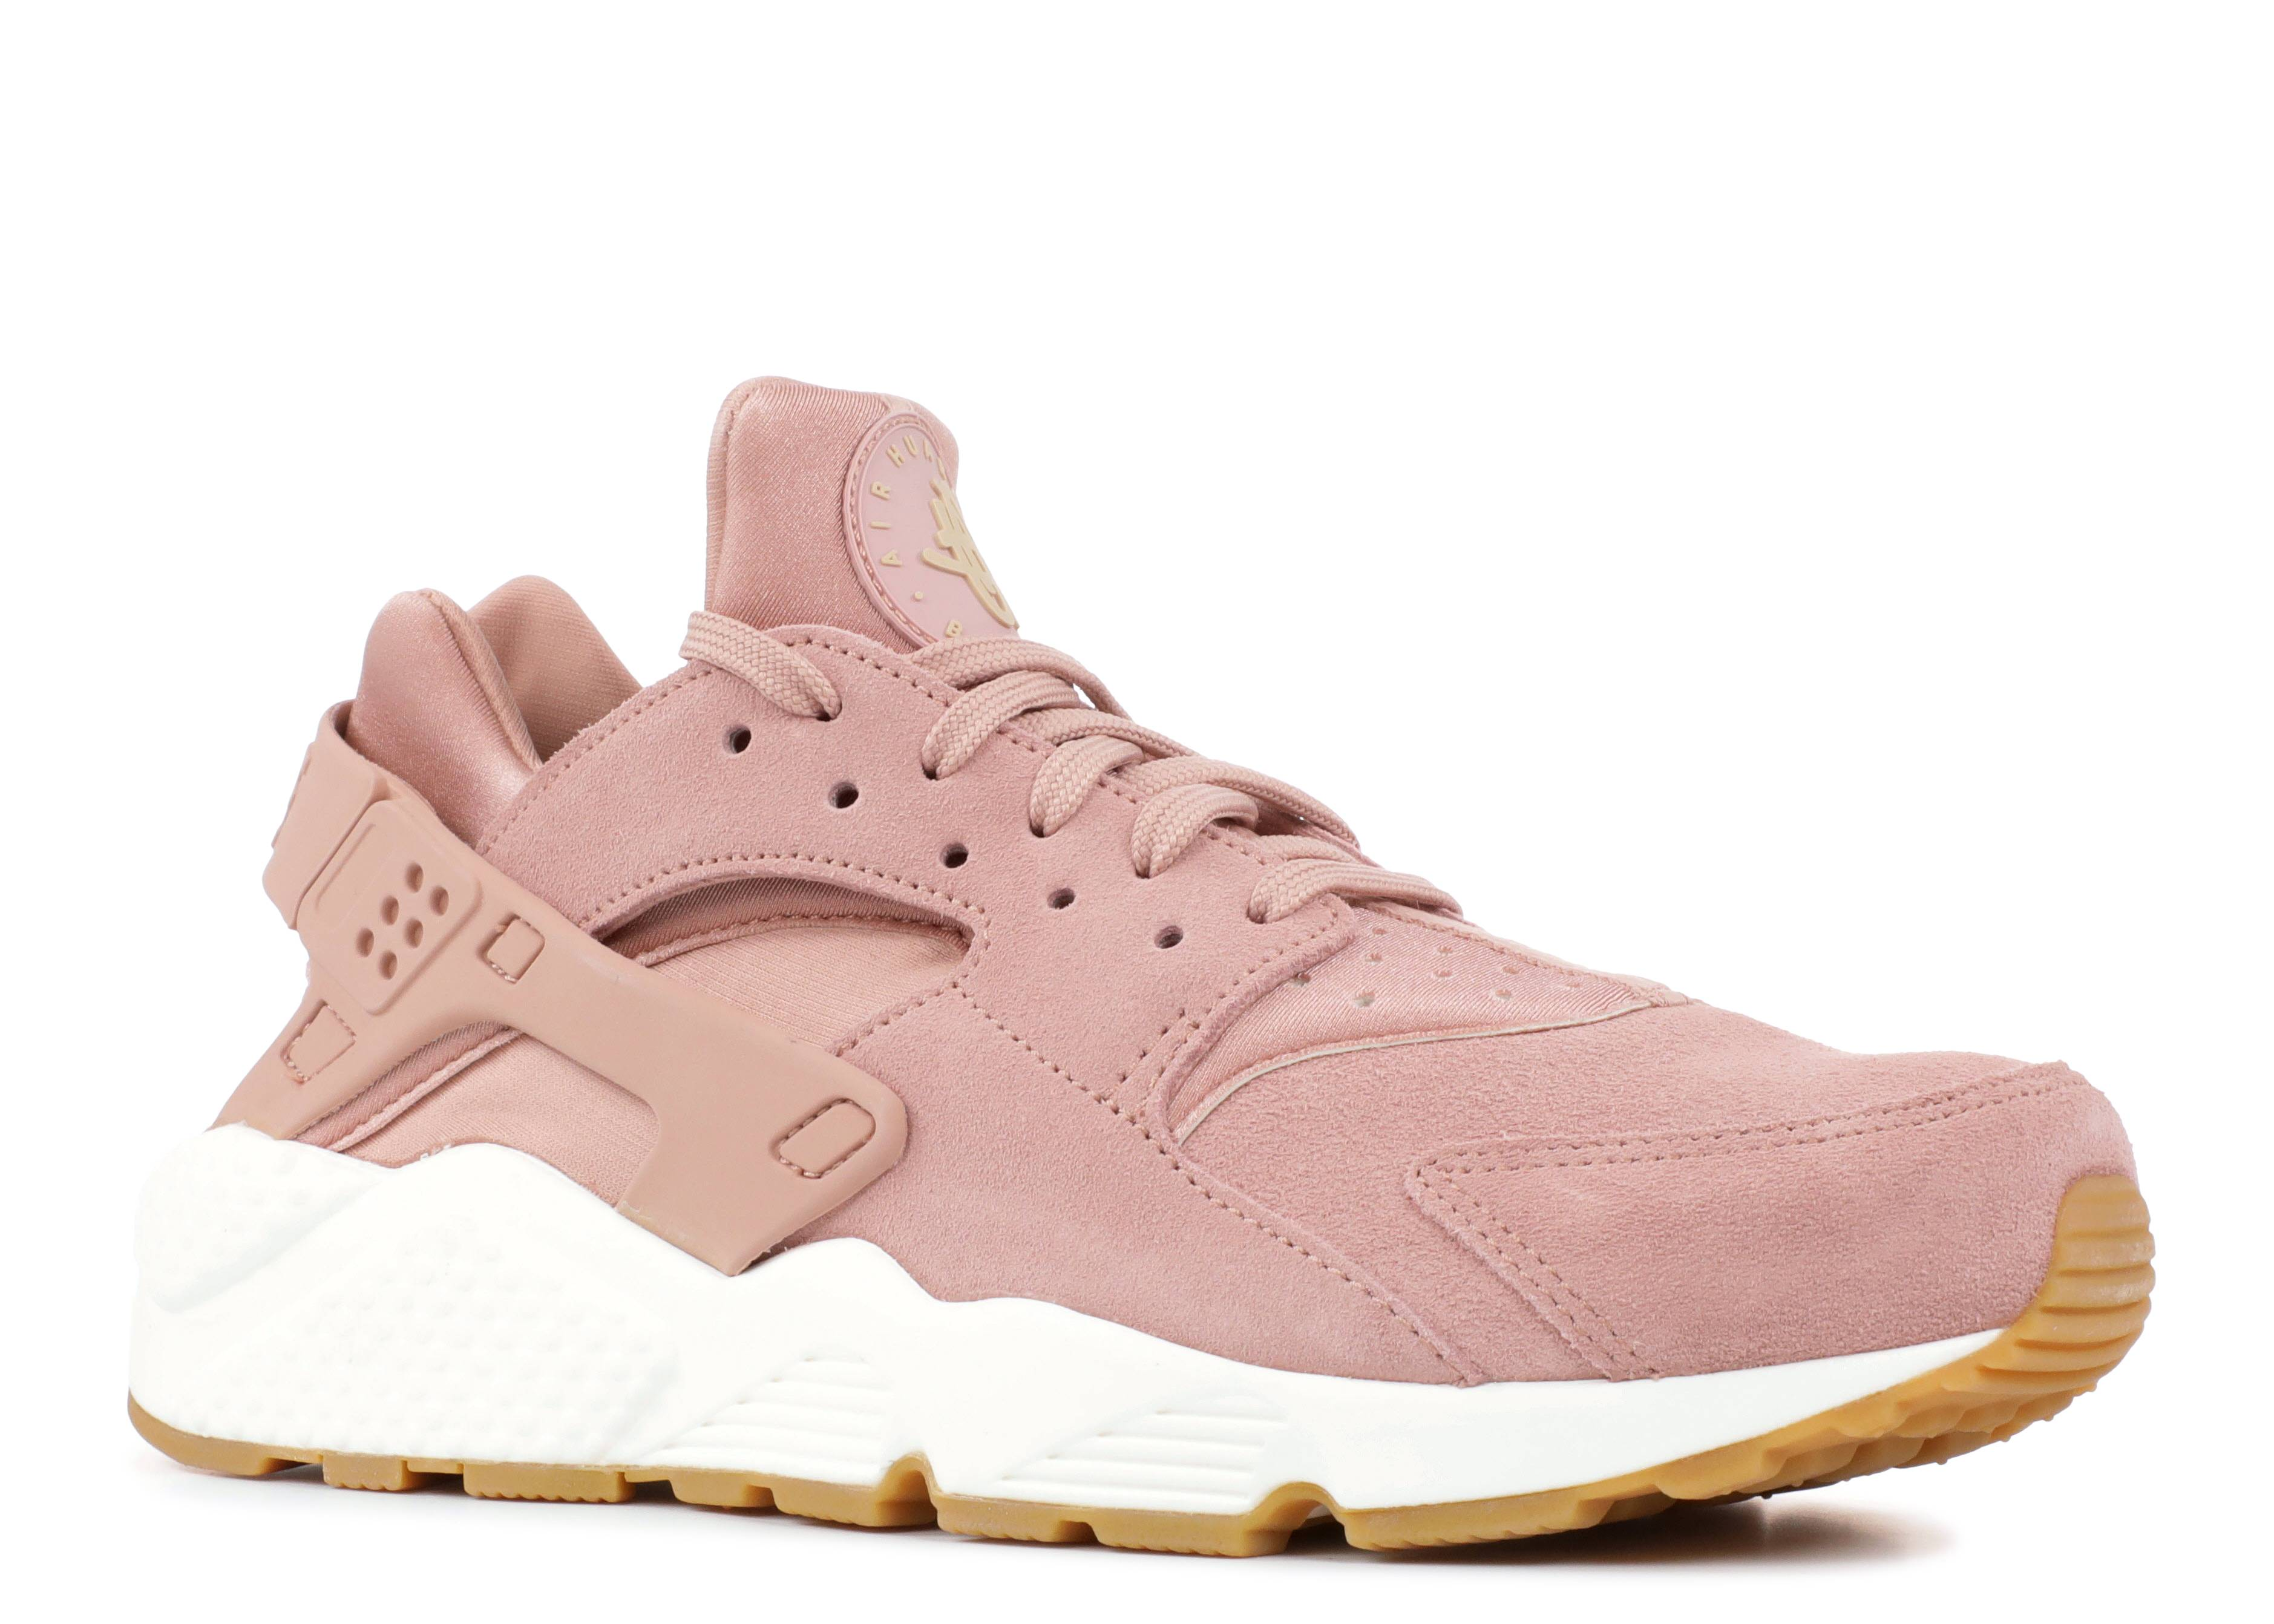 7184b8d73b16 Wmns Air Huarache Run Sd